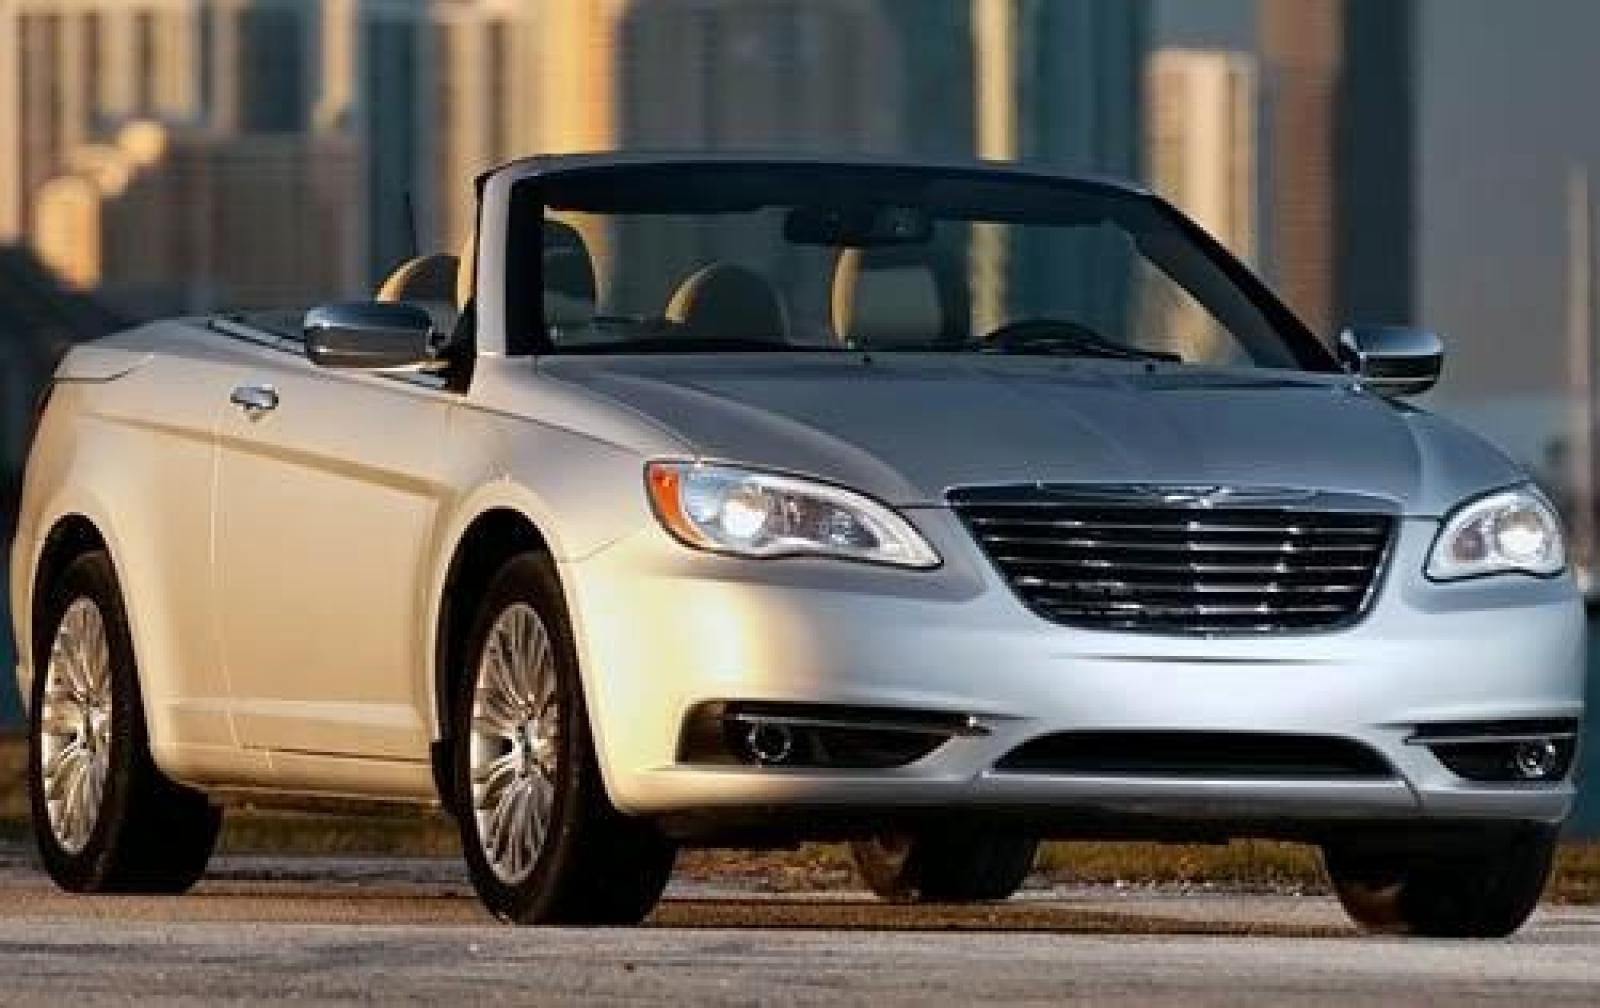 2011 chrysler 200 information and photos zombiedrive. Black Bedroom Furniture Sets. Home Design Ideas